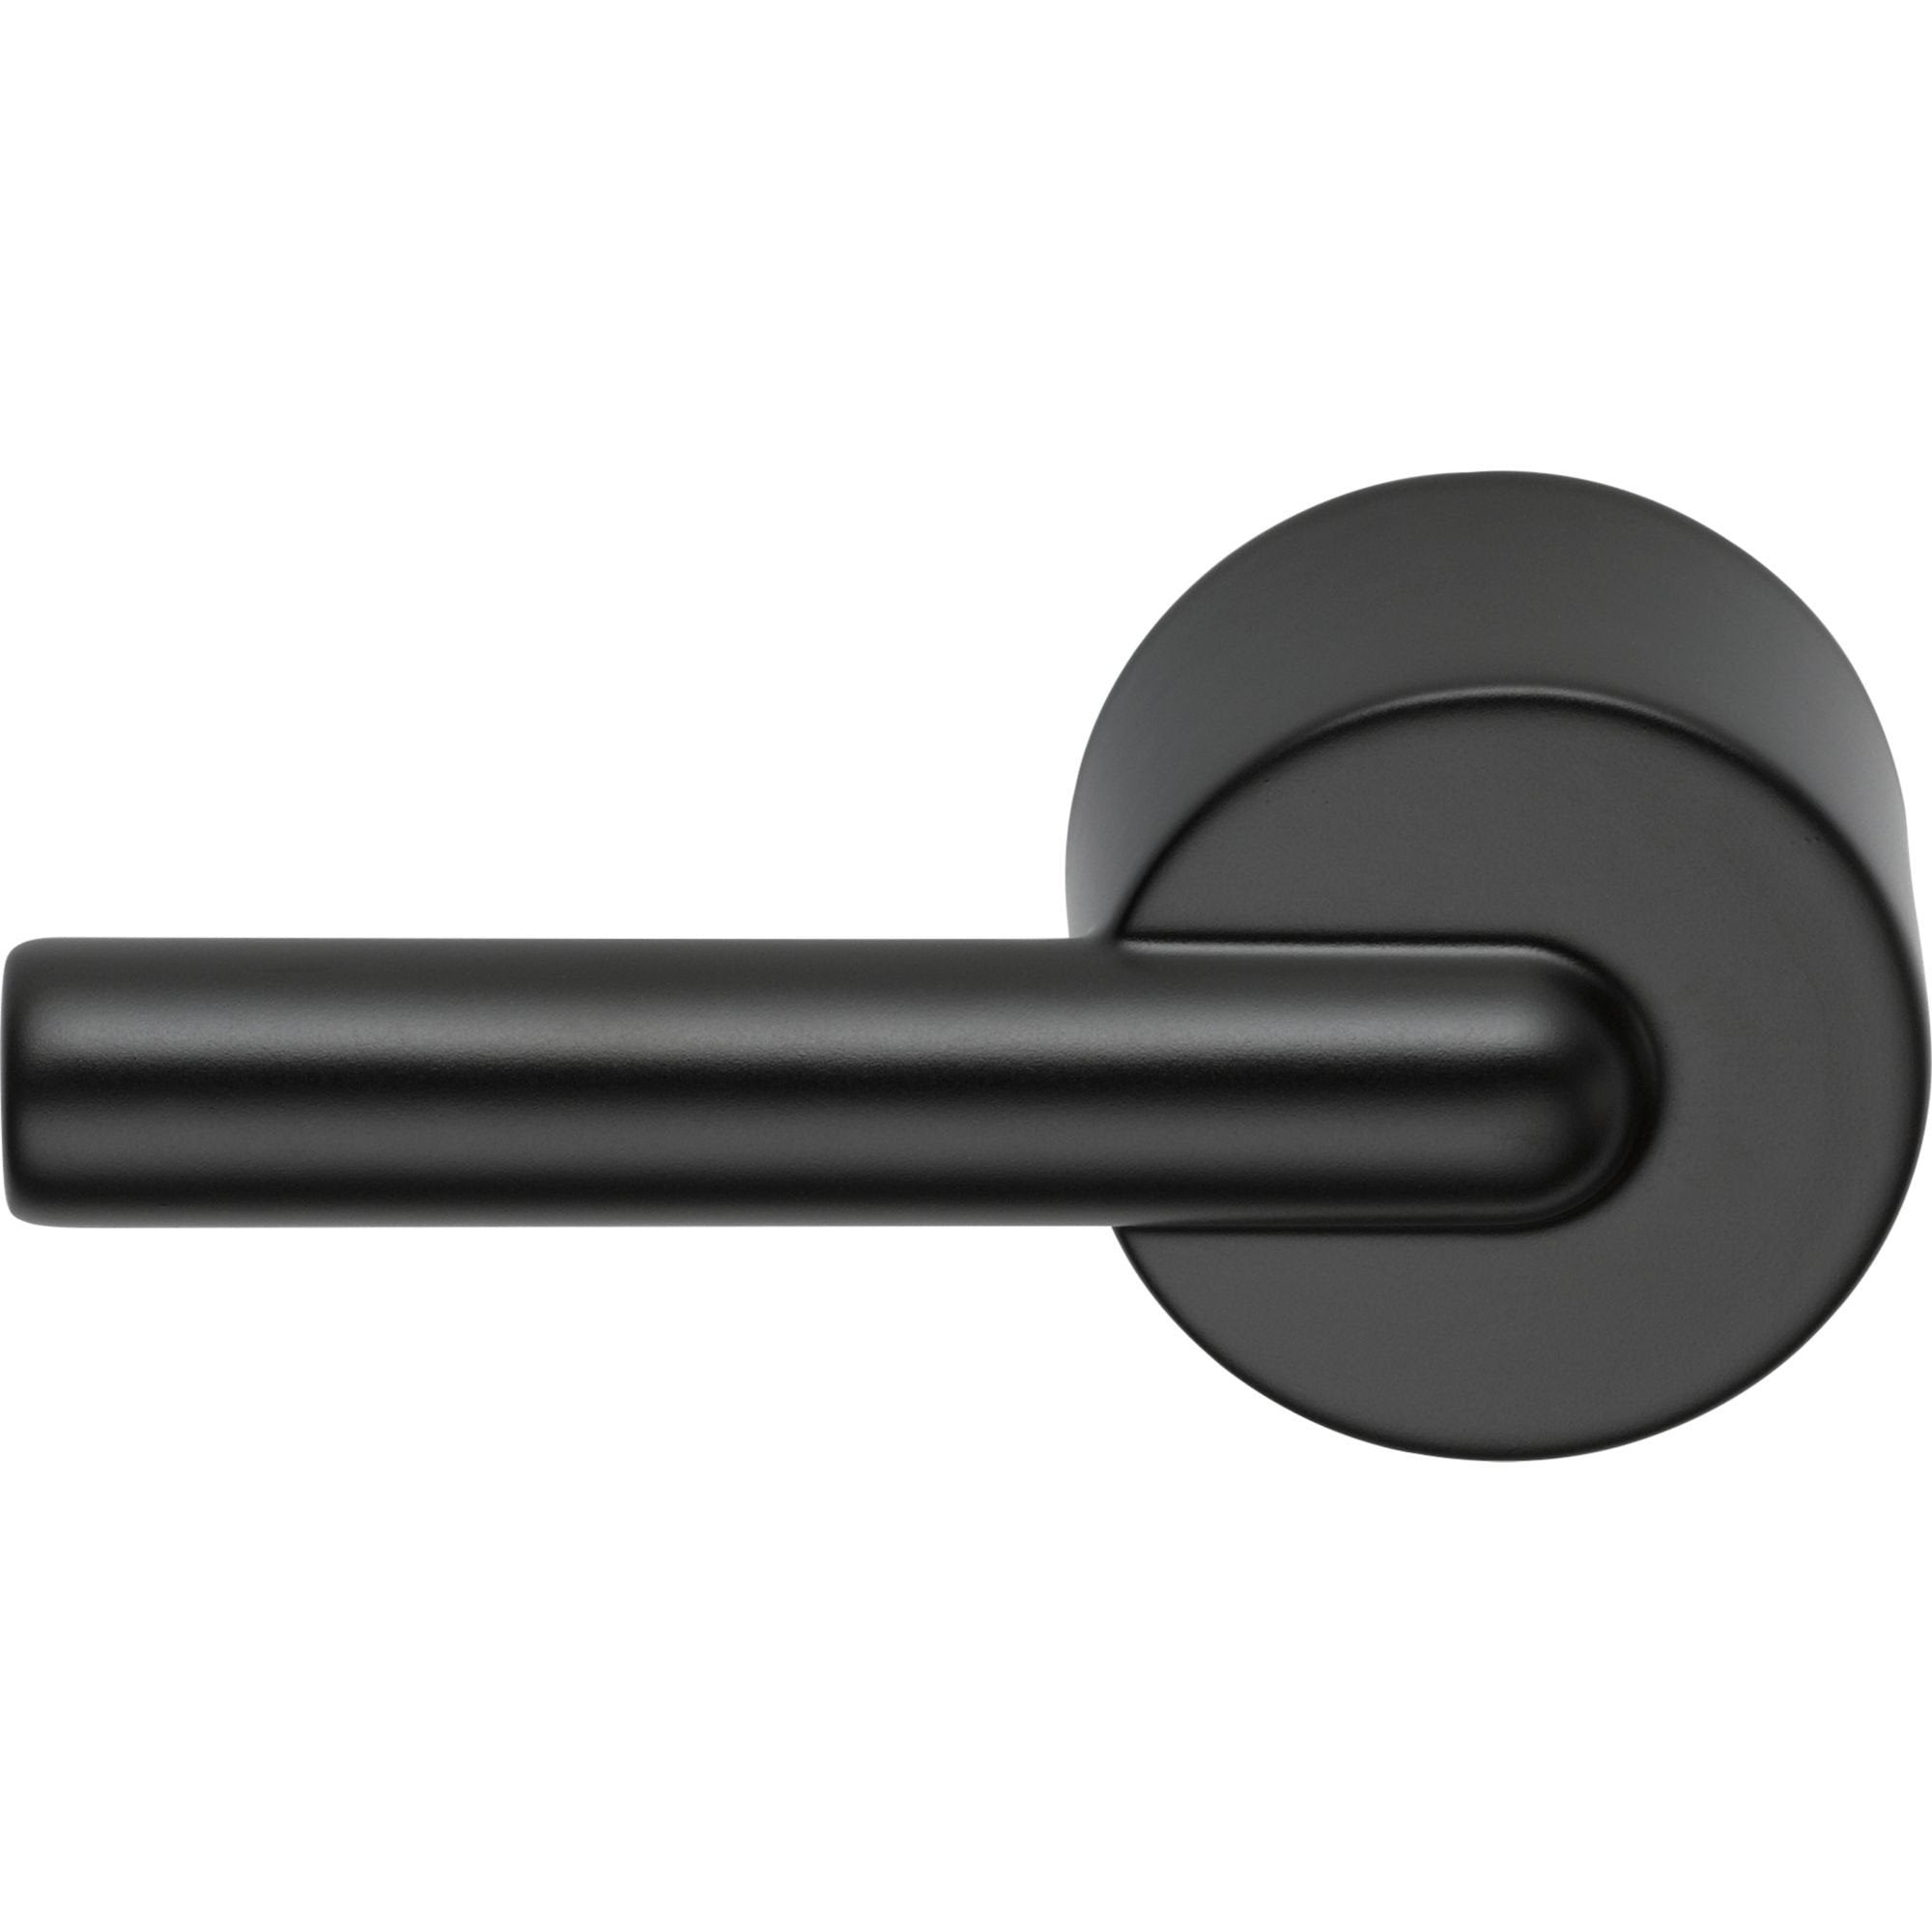 Delta Trinsic Collection Matte Black Finish Modern Universal Mount Toilet Tank Flush Handle Lever D75960BL